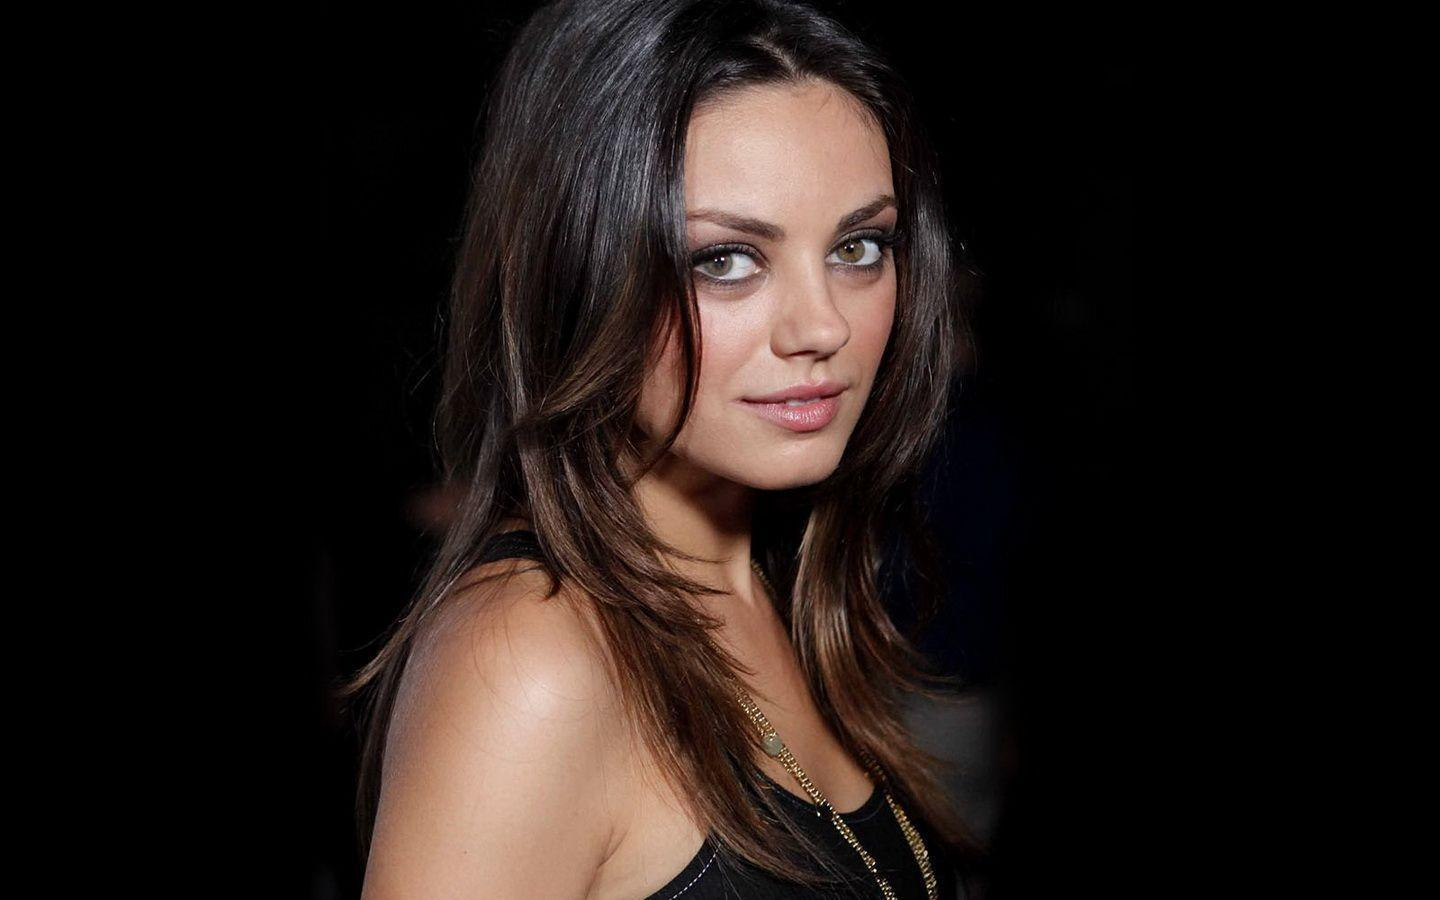 Animals In Suits Wallpaper Mila Kunis Wallpapers Hd Wallpaper Cave